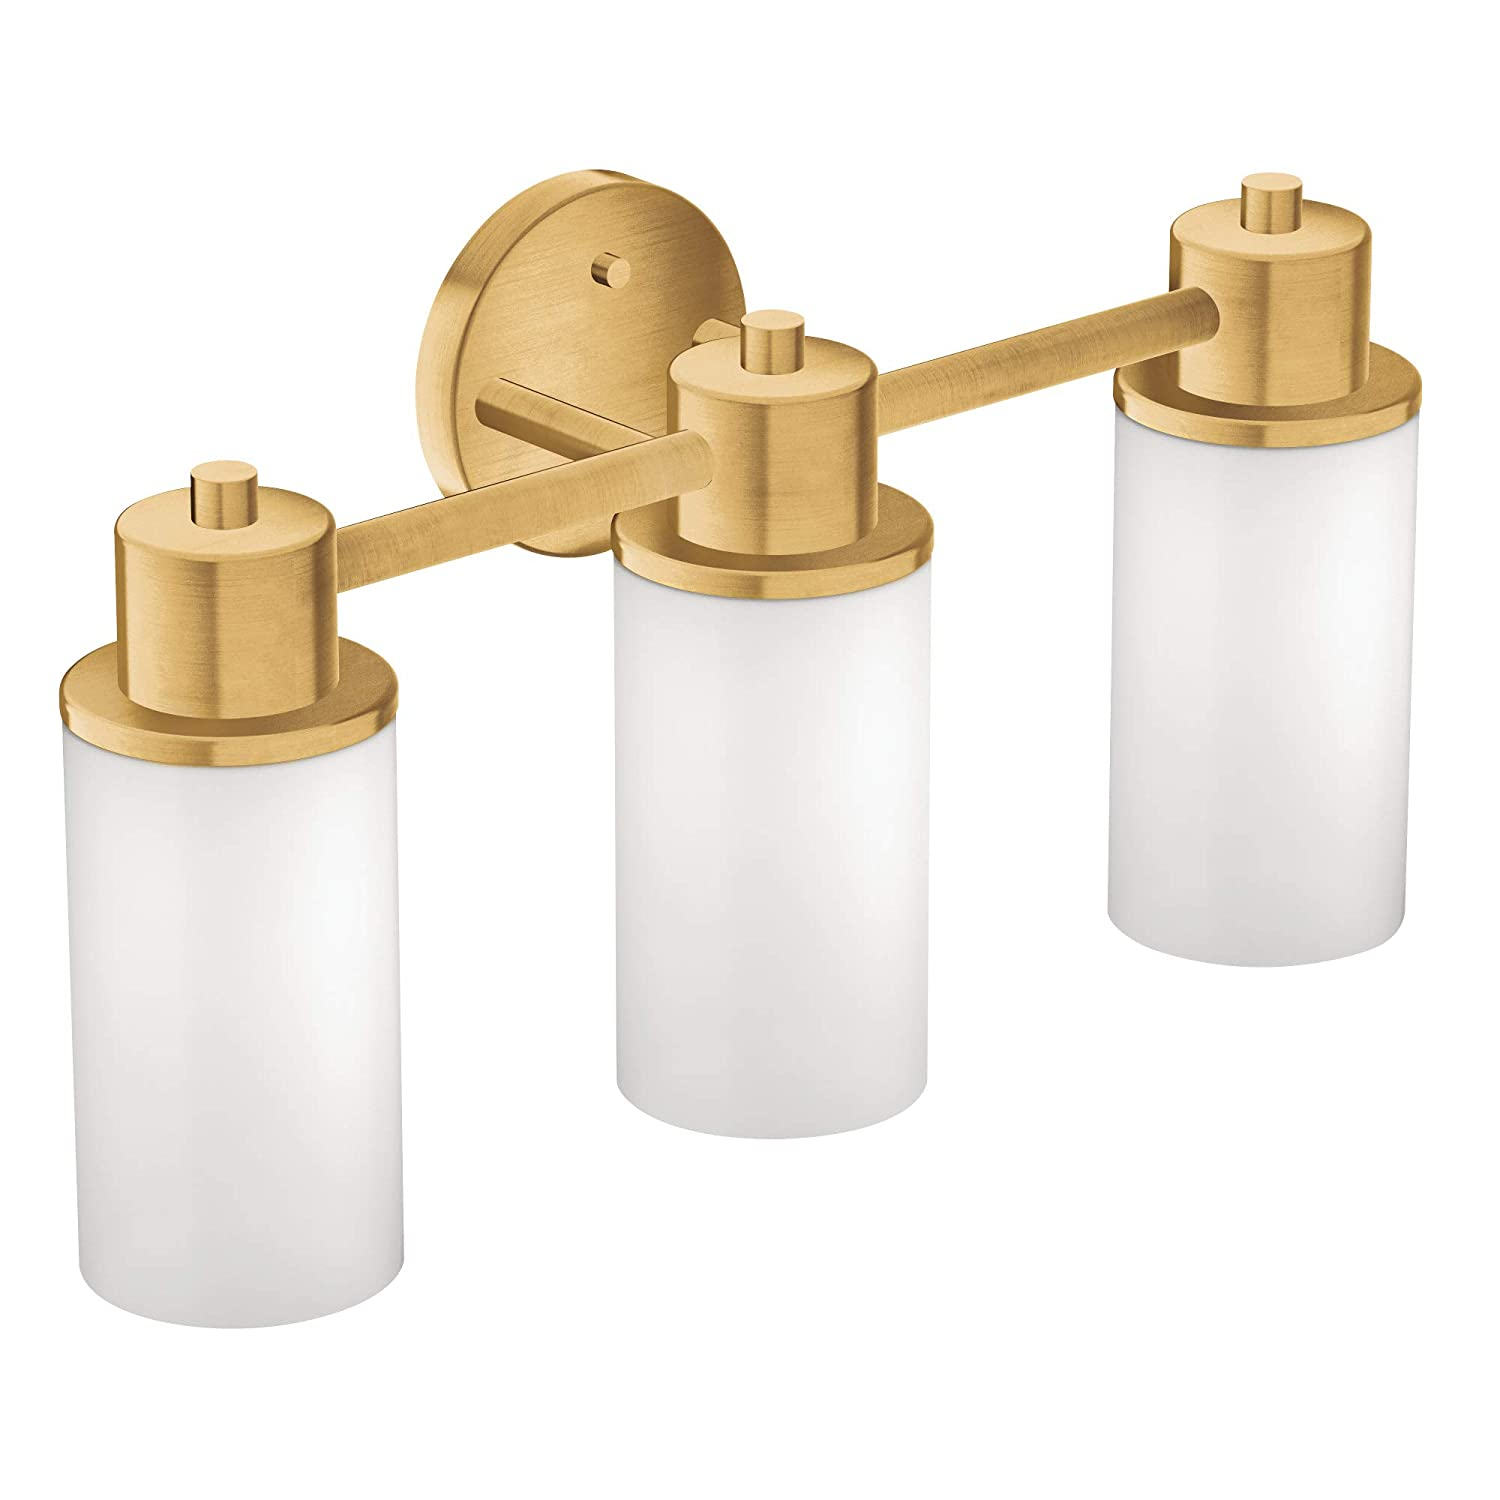 Moen DN0763BG 3-Light Dual-Mount Bath Bathroom Vanity Fixture with Frosted Glass, Brushed Gold